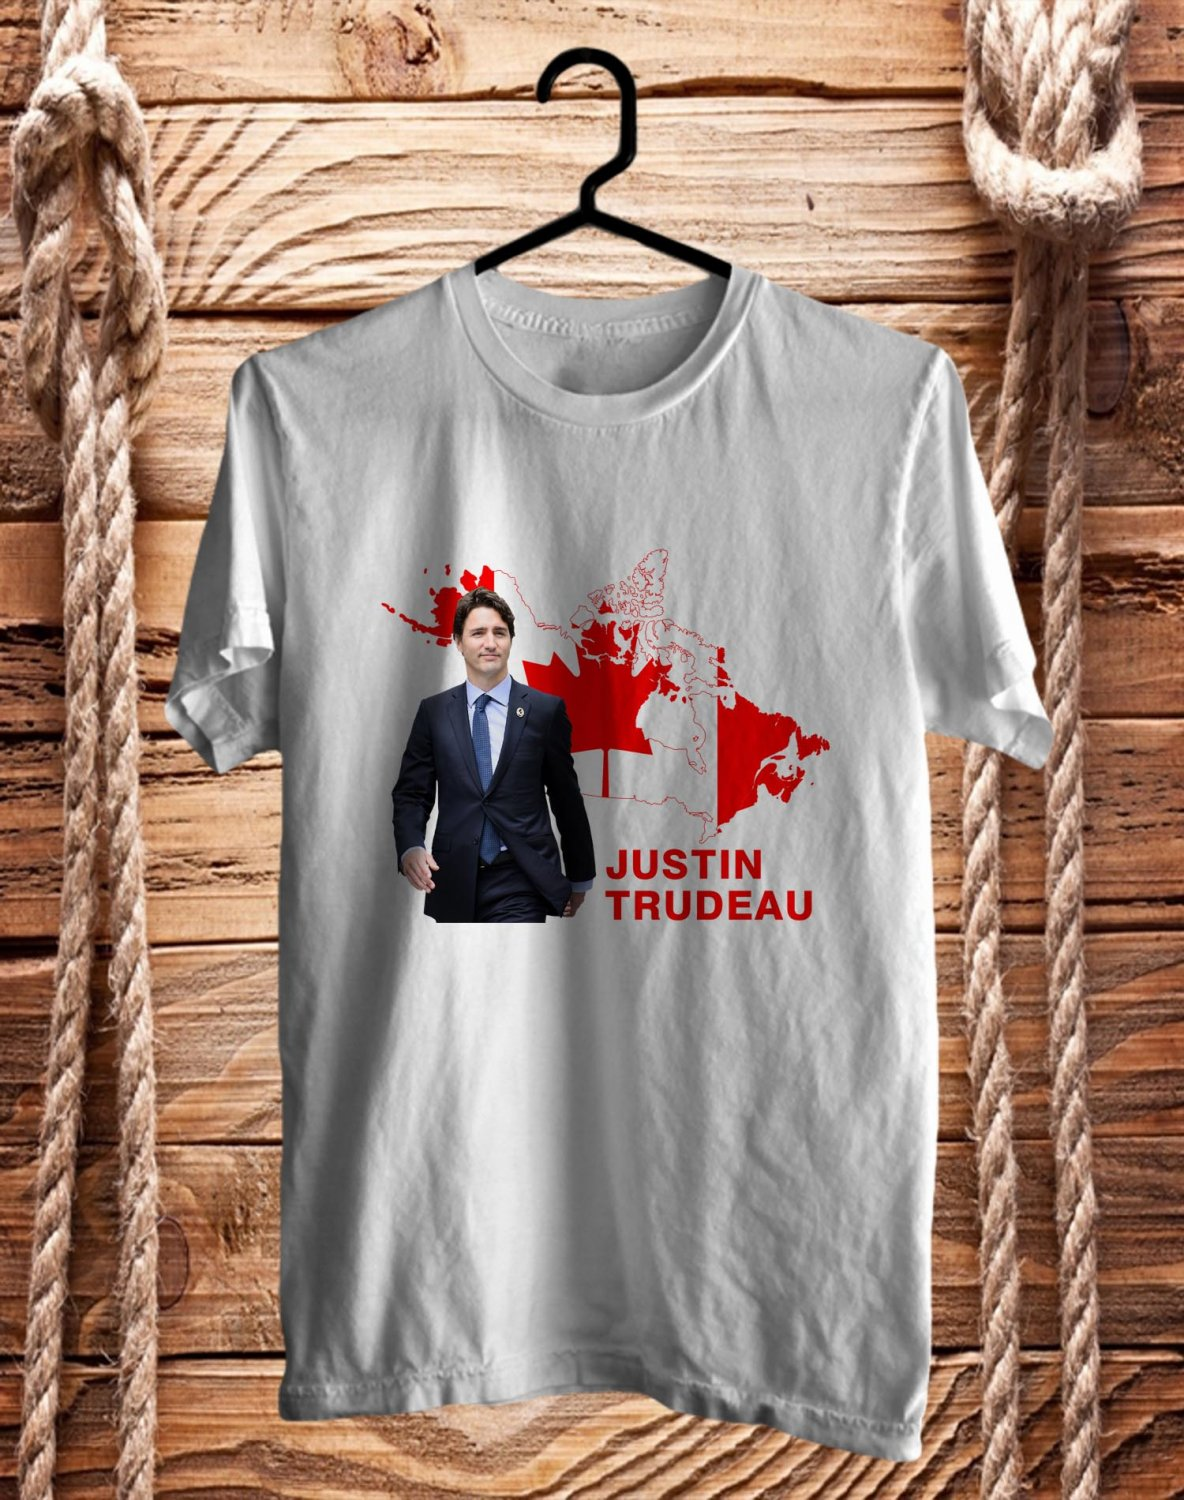 Justin Trudeau Canada White Tee's  Front Side by Complexart